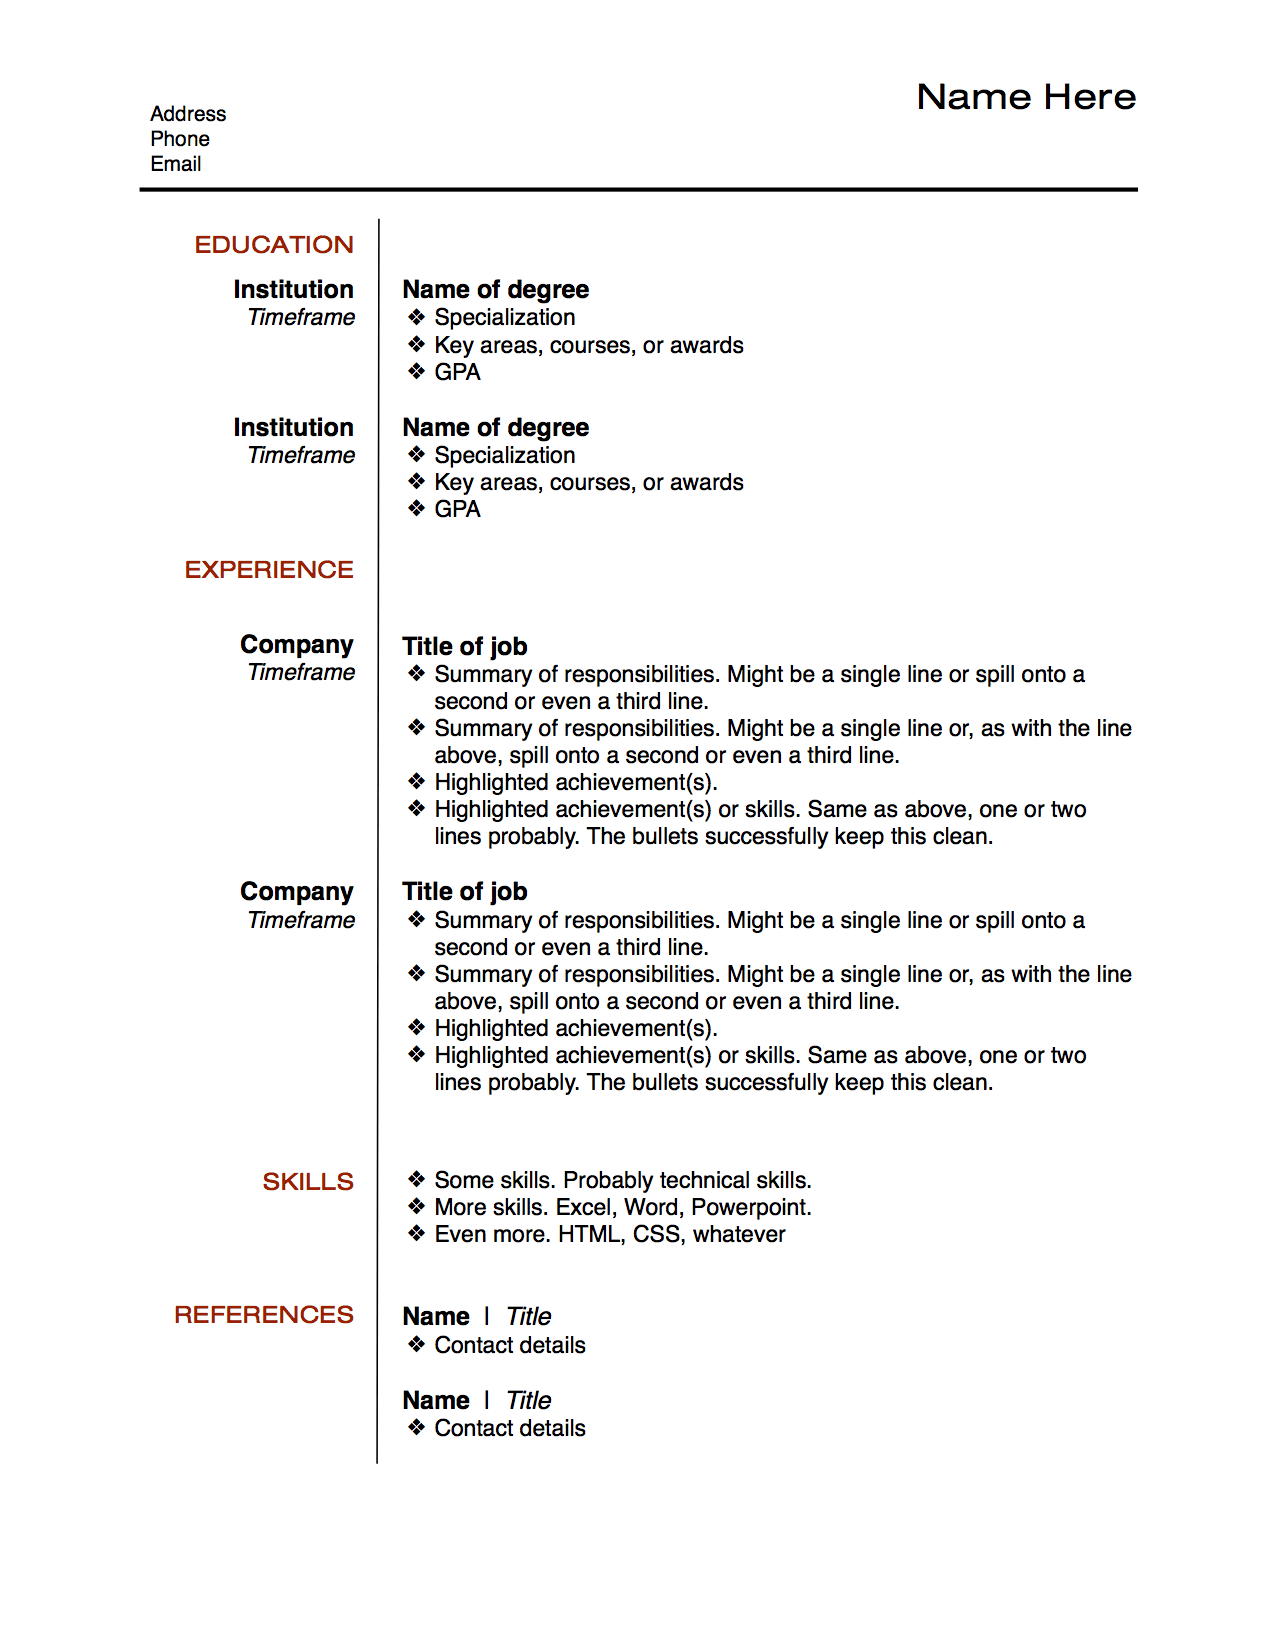 resume example for rj